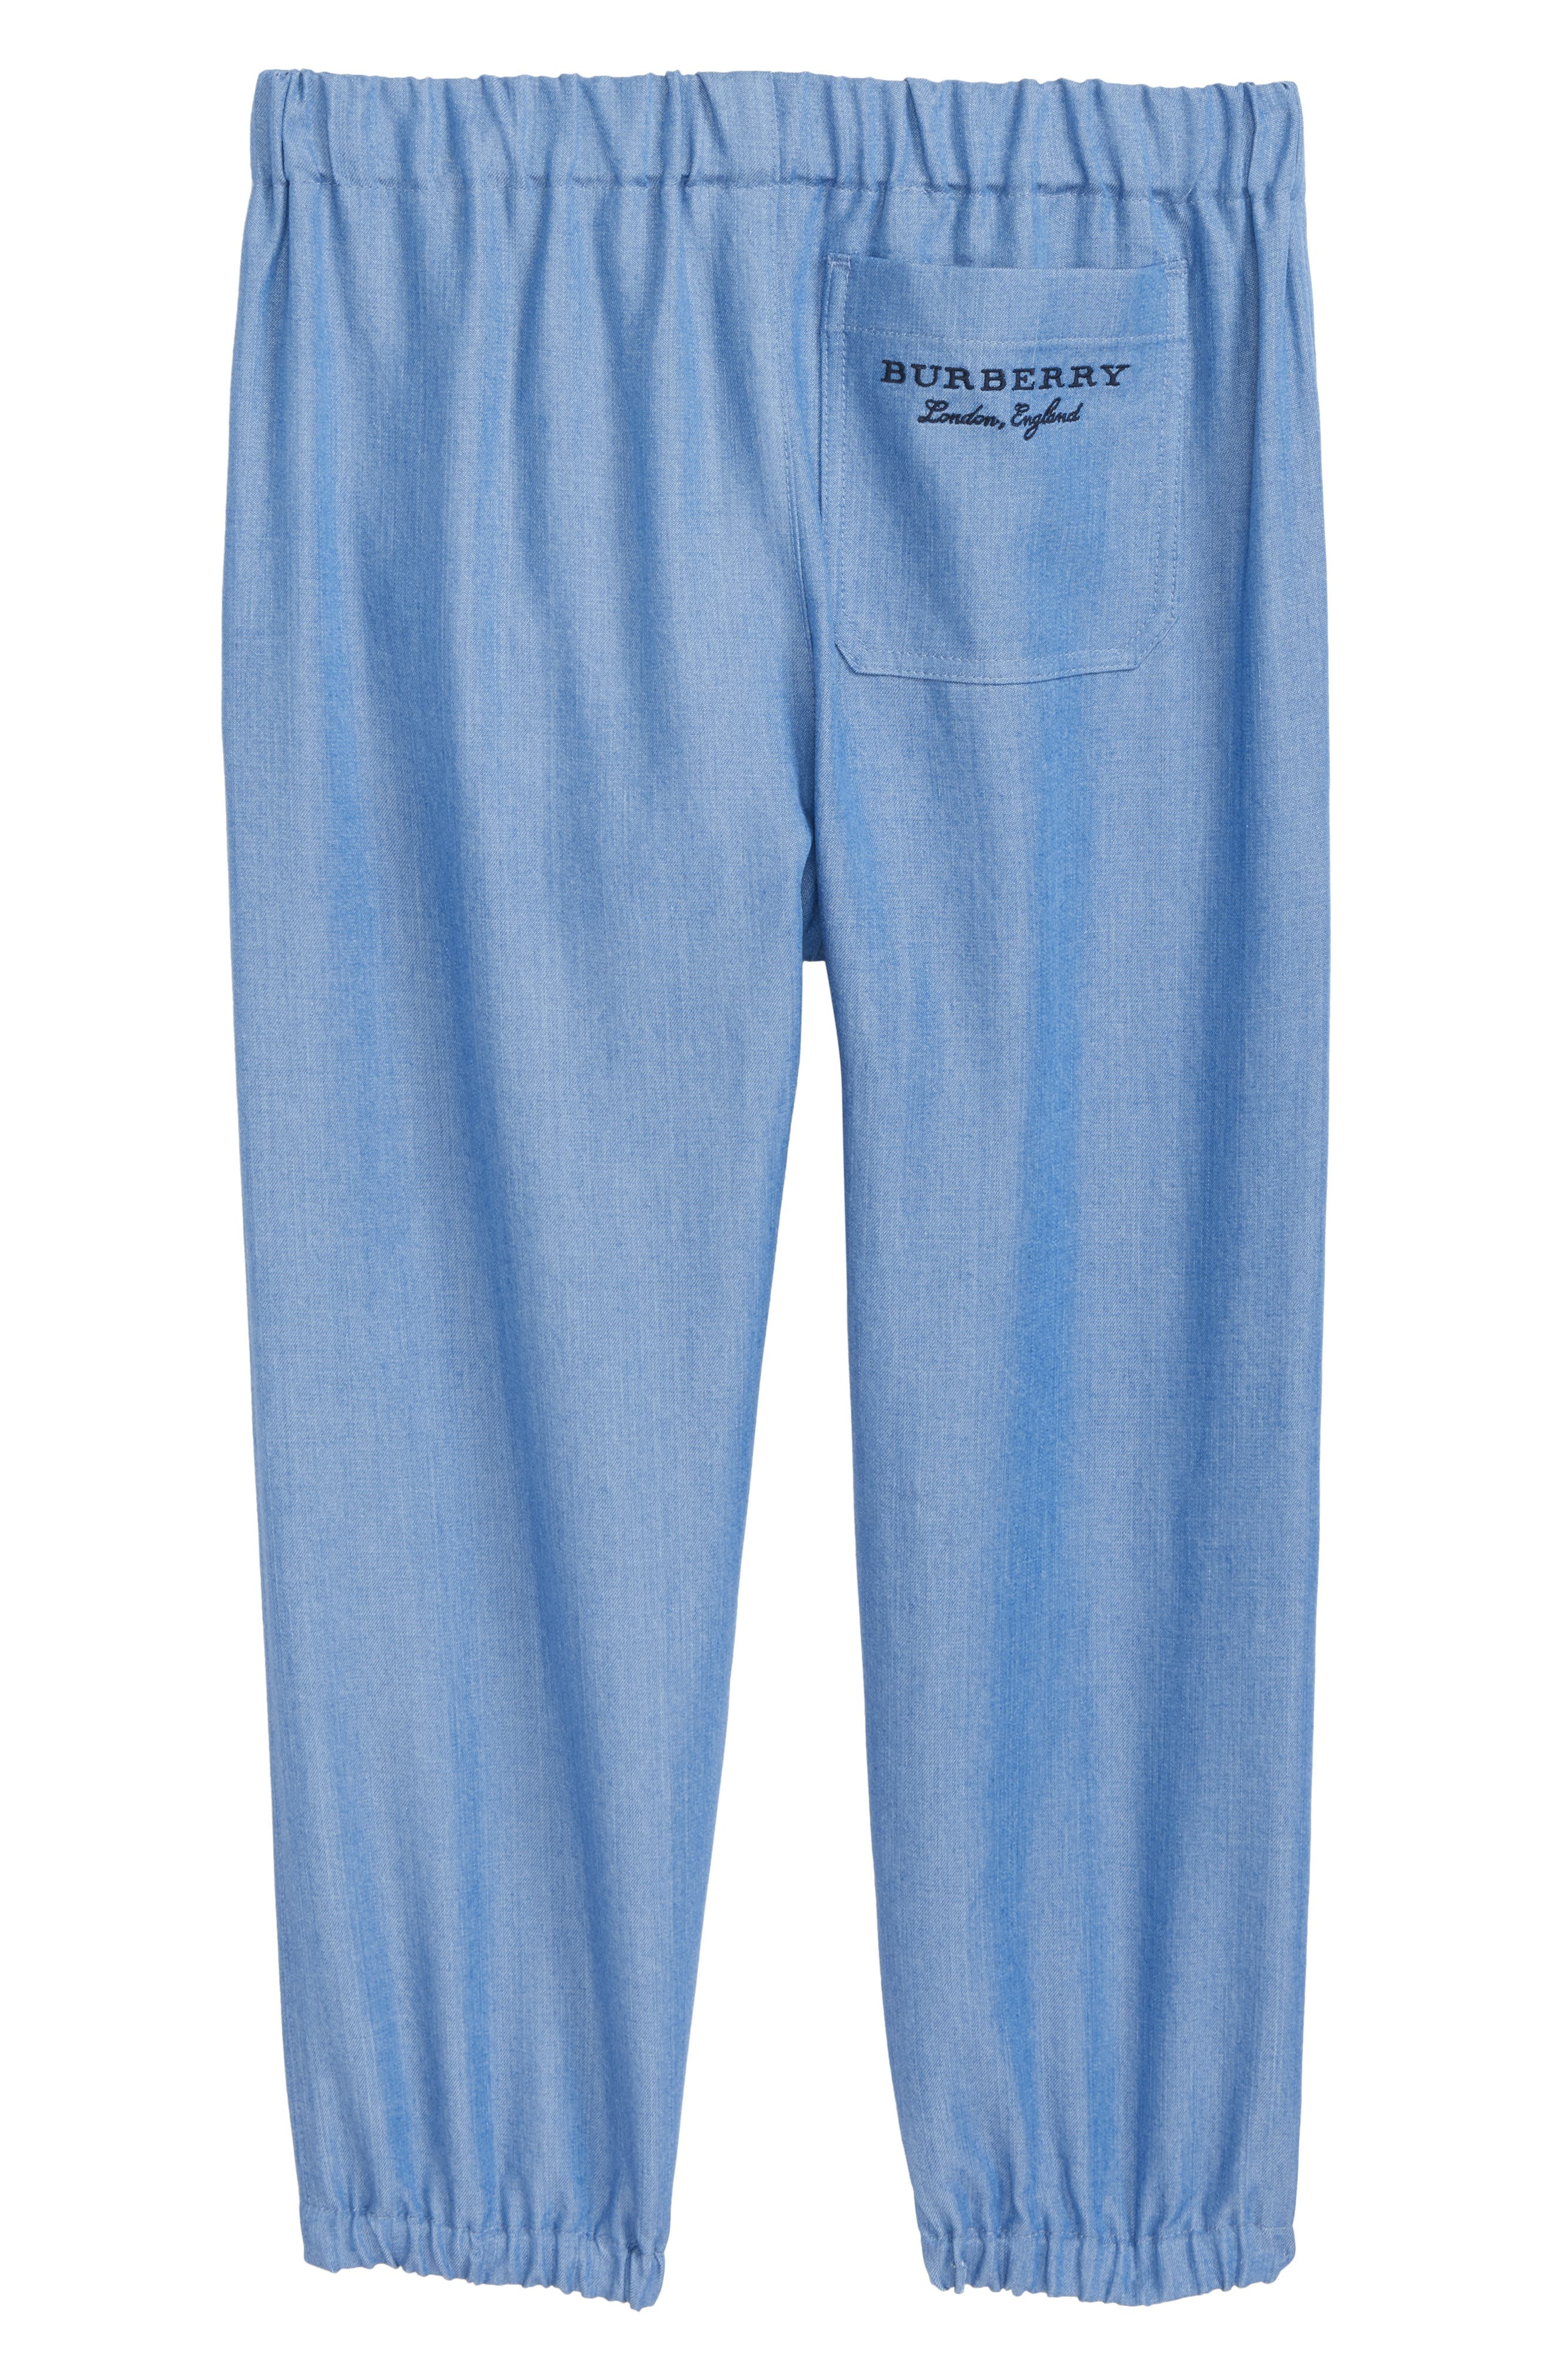 Phillie Chambray Pants,                             Alternate thumbnail 2, color,